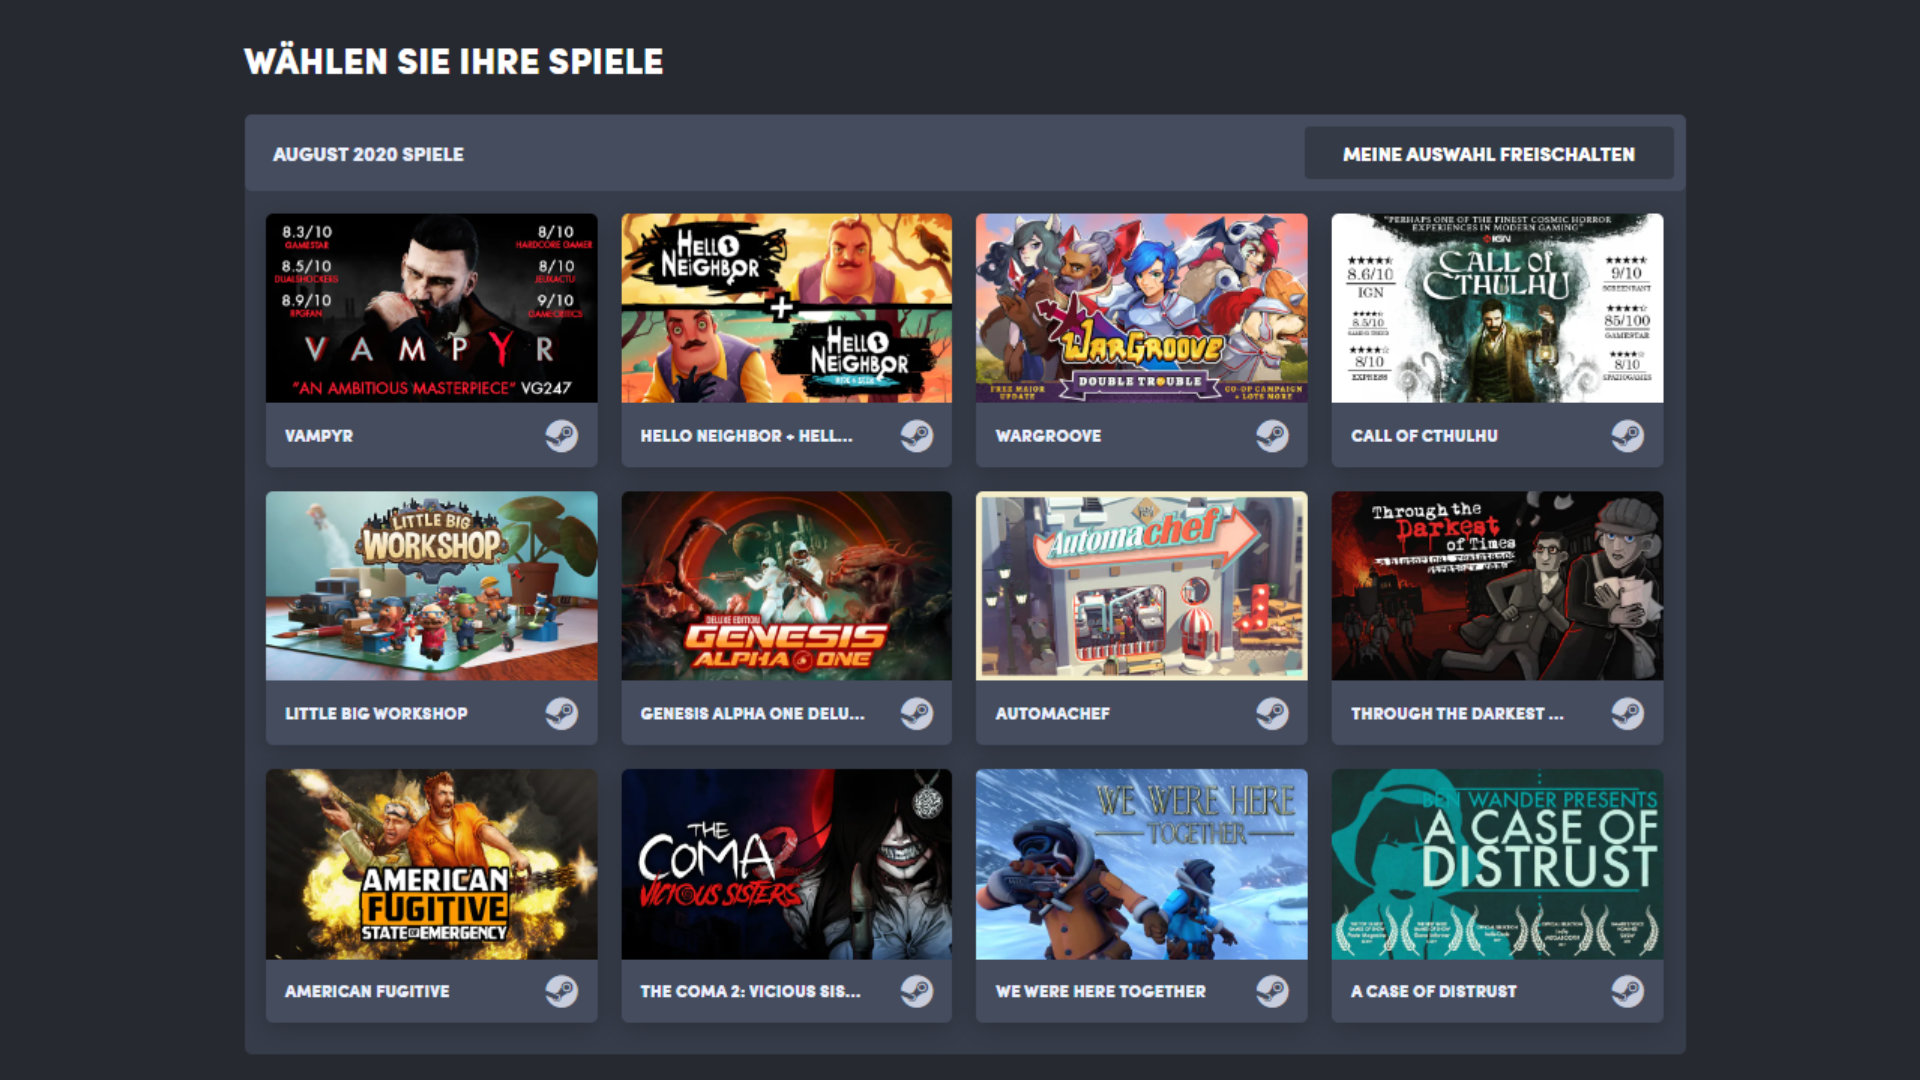 Quelle: Humble Bundle (Choice) - August 2020 Auswahl